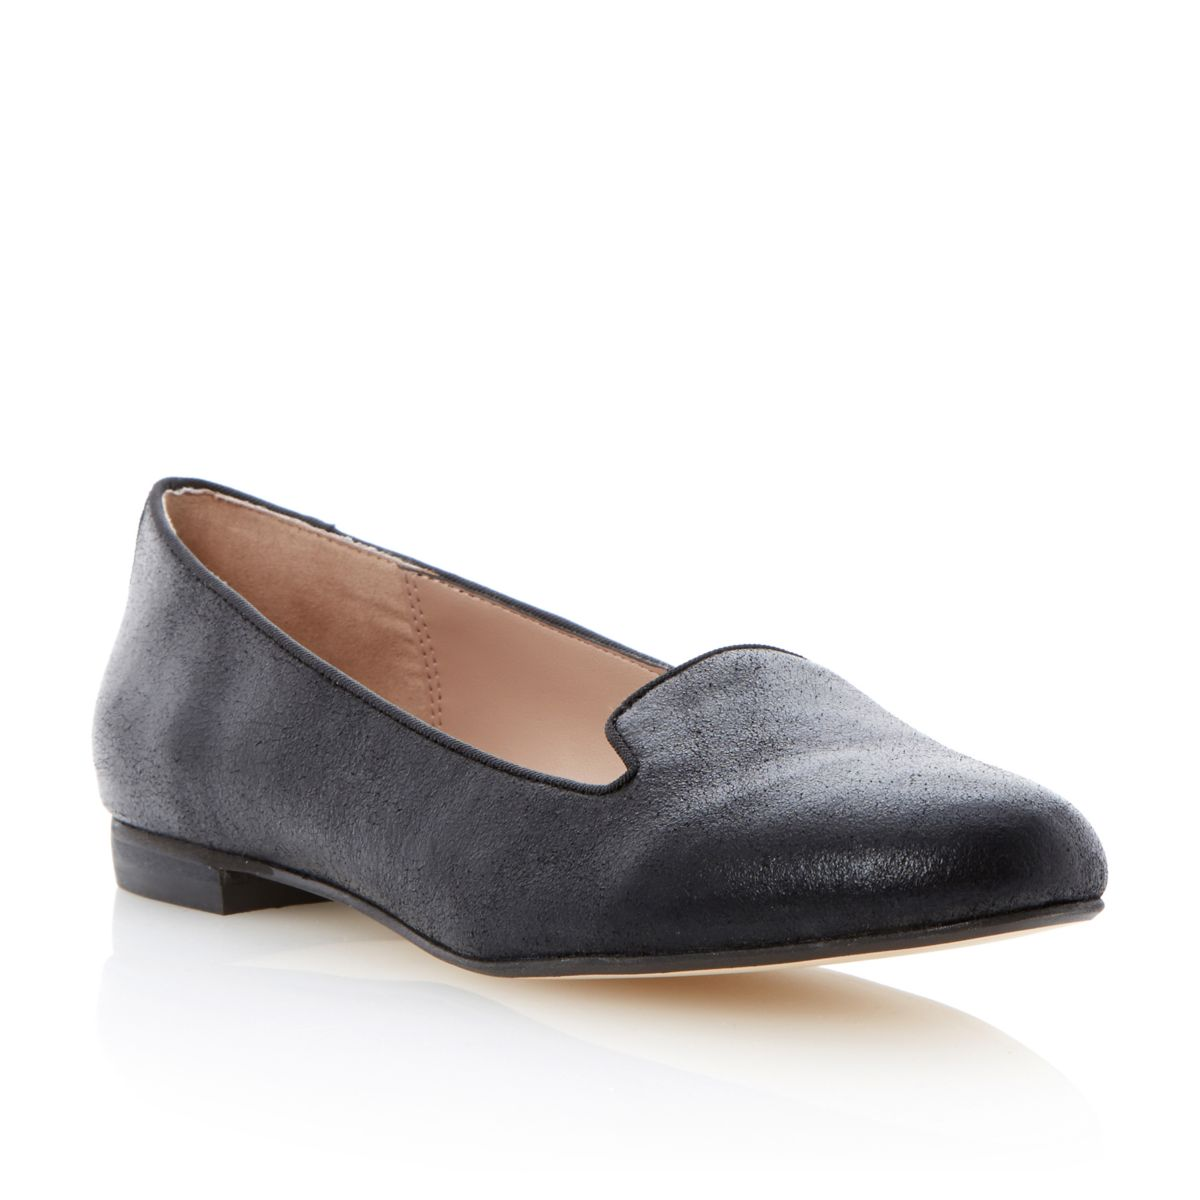 DUNE-LADIES-LIMBO-WOMENS-BLACK-SLIPPERS-FLAT-PLAIN-PIPING-SHOES-LOAFERS-SIZE-3-8